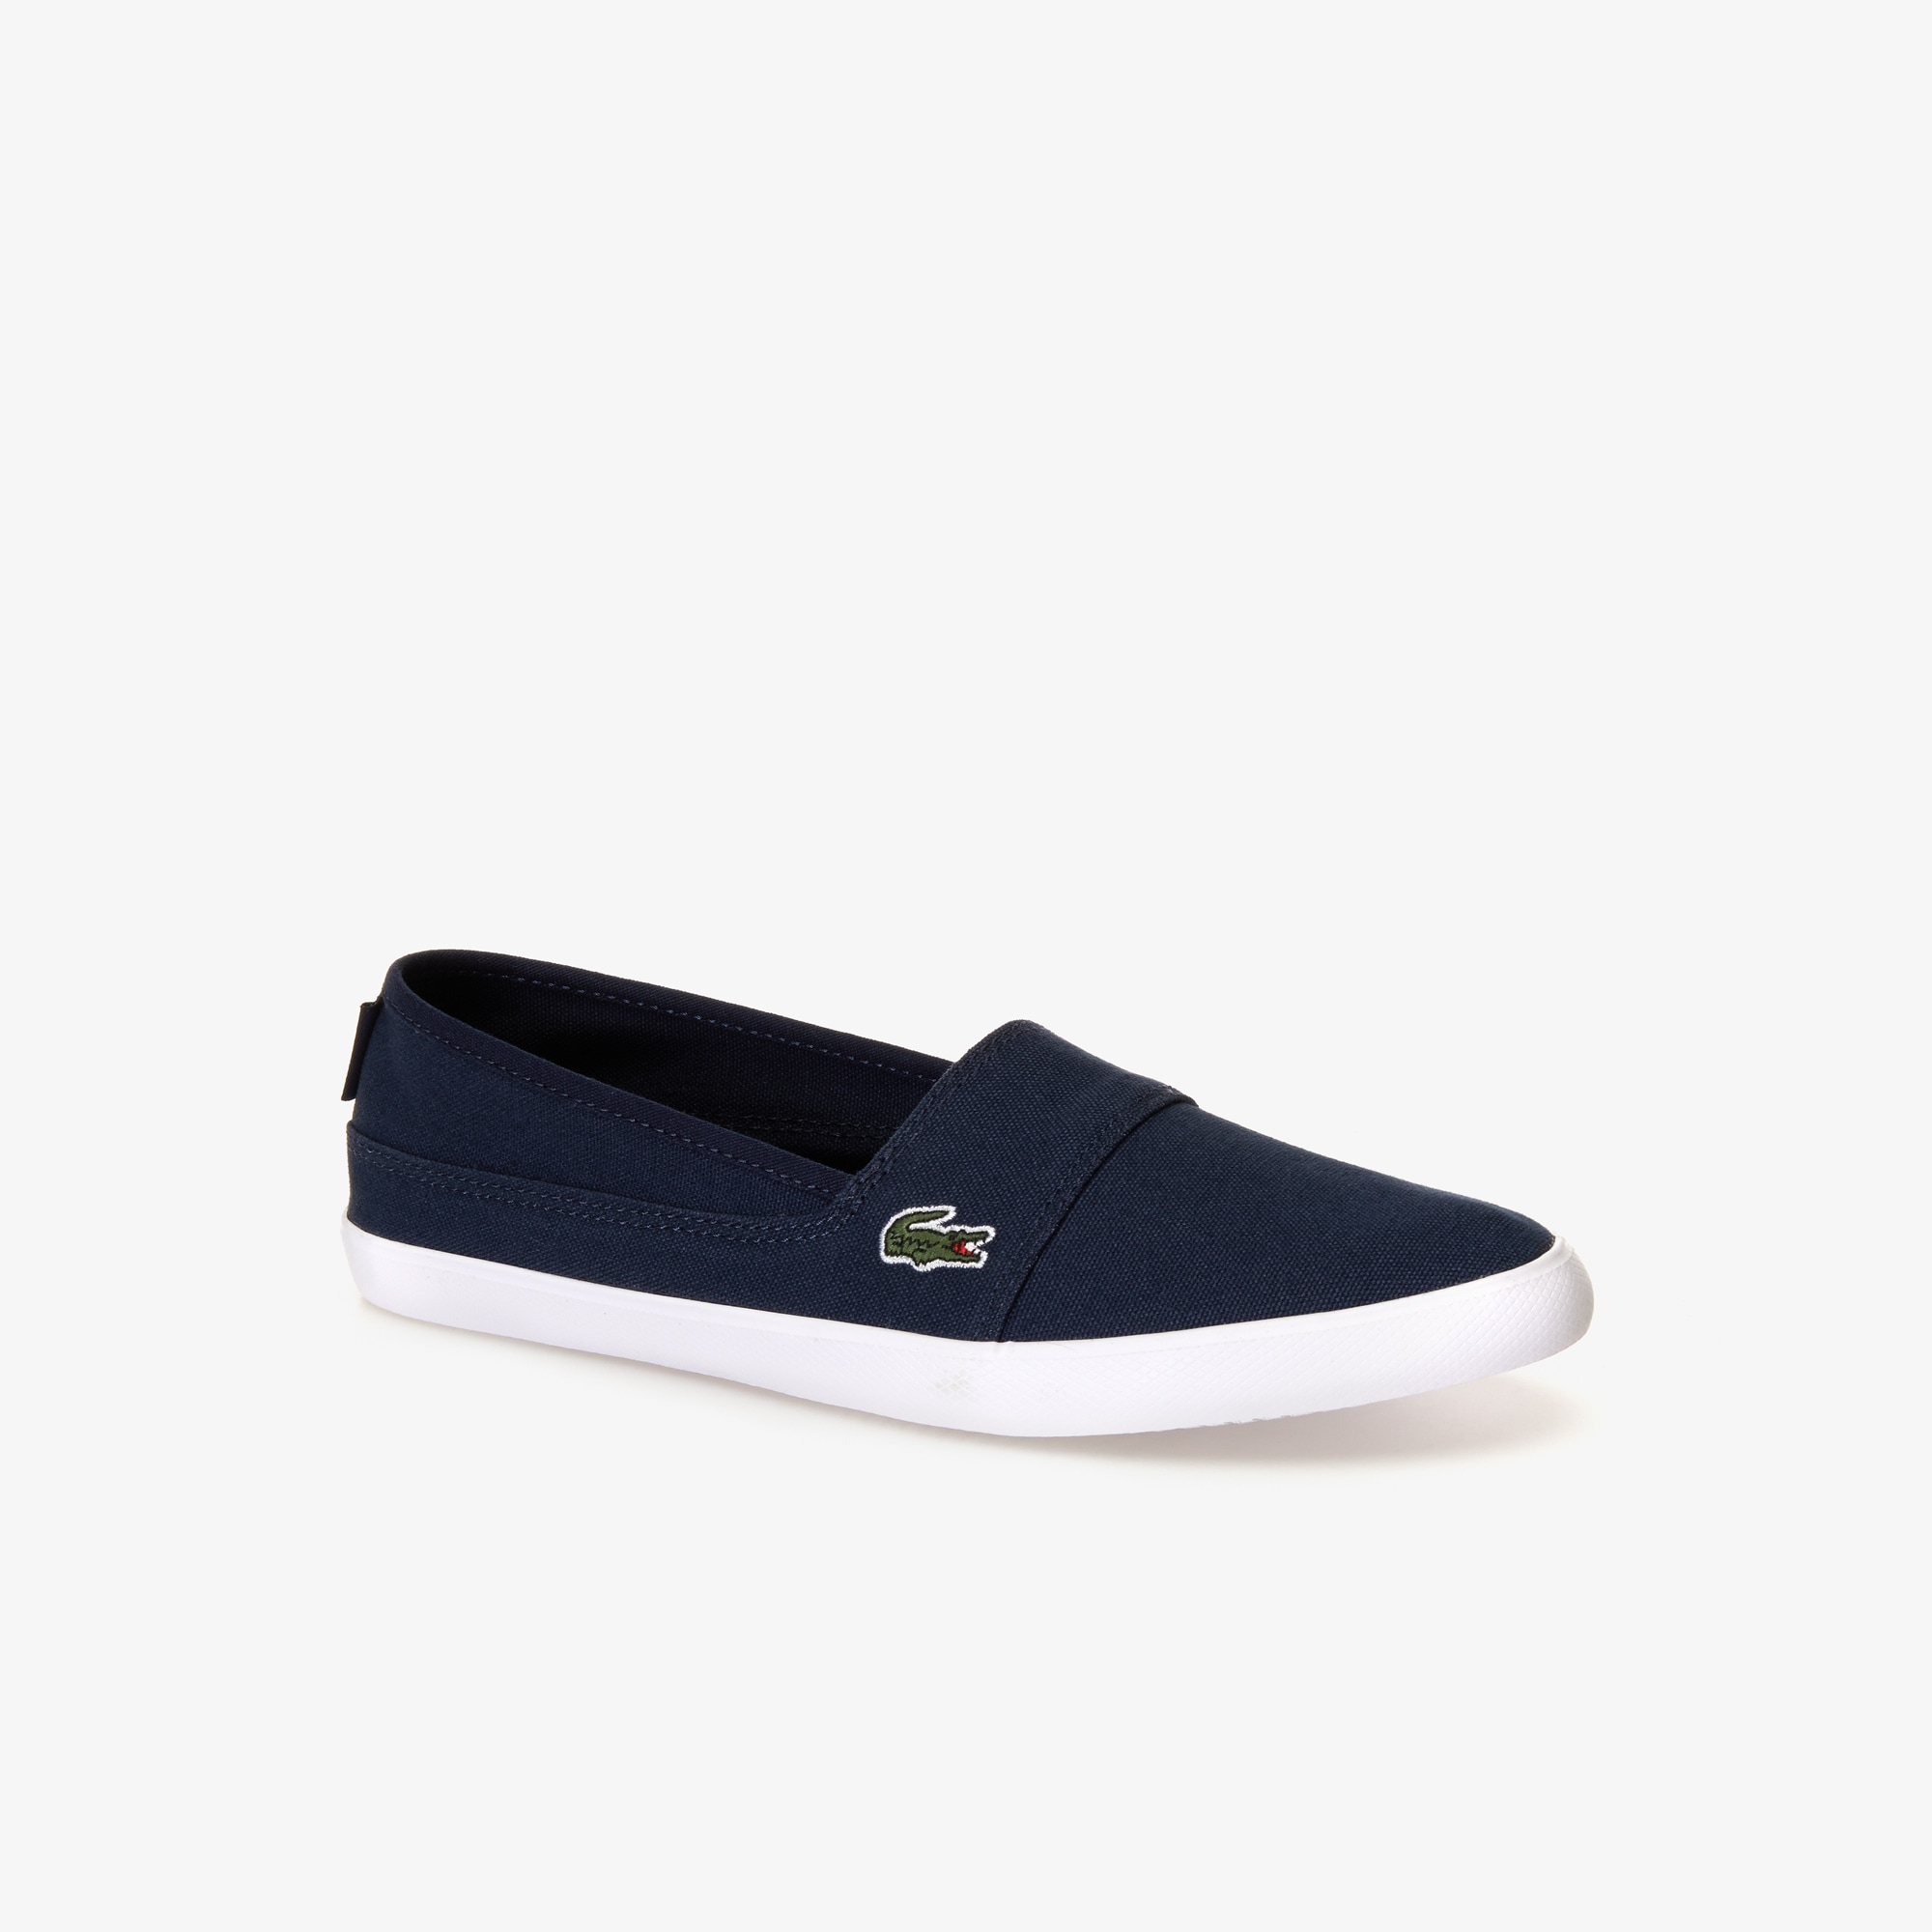 Chaussures Chaussures Lacoste Lacoste En ToileFemme Chaussures ToileFemme En En XiZuPk